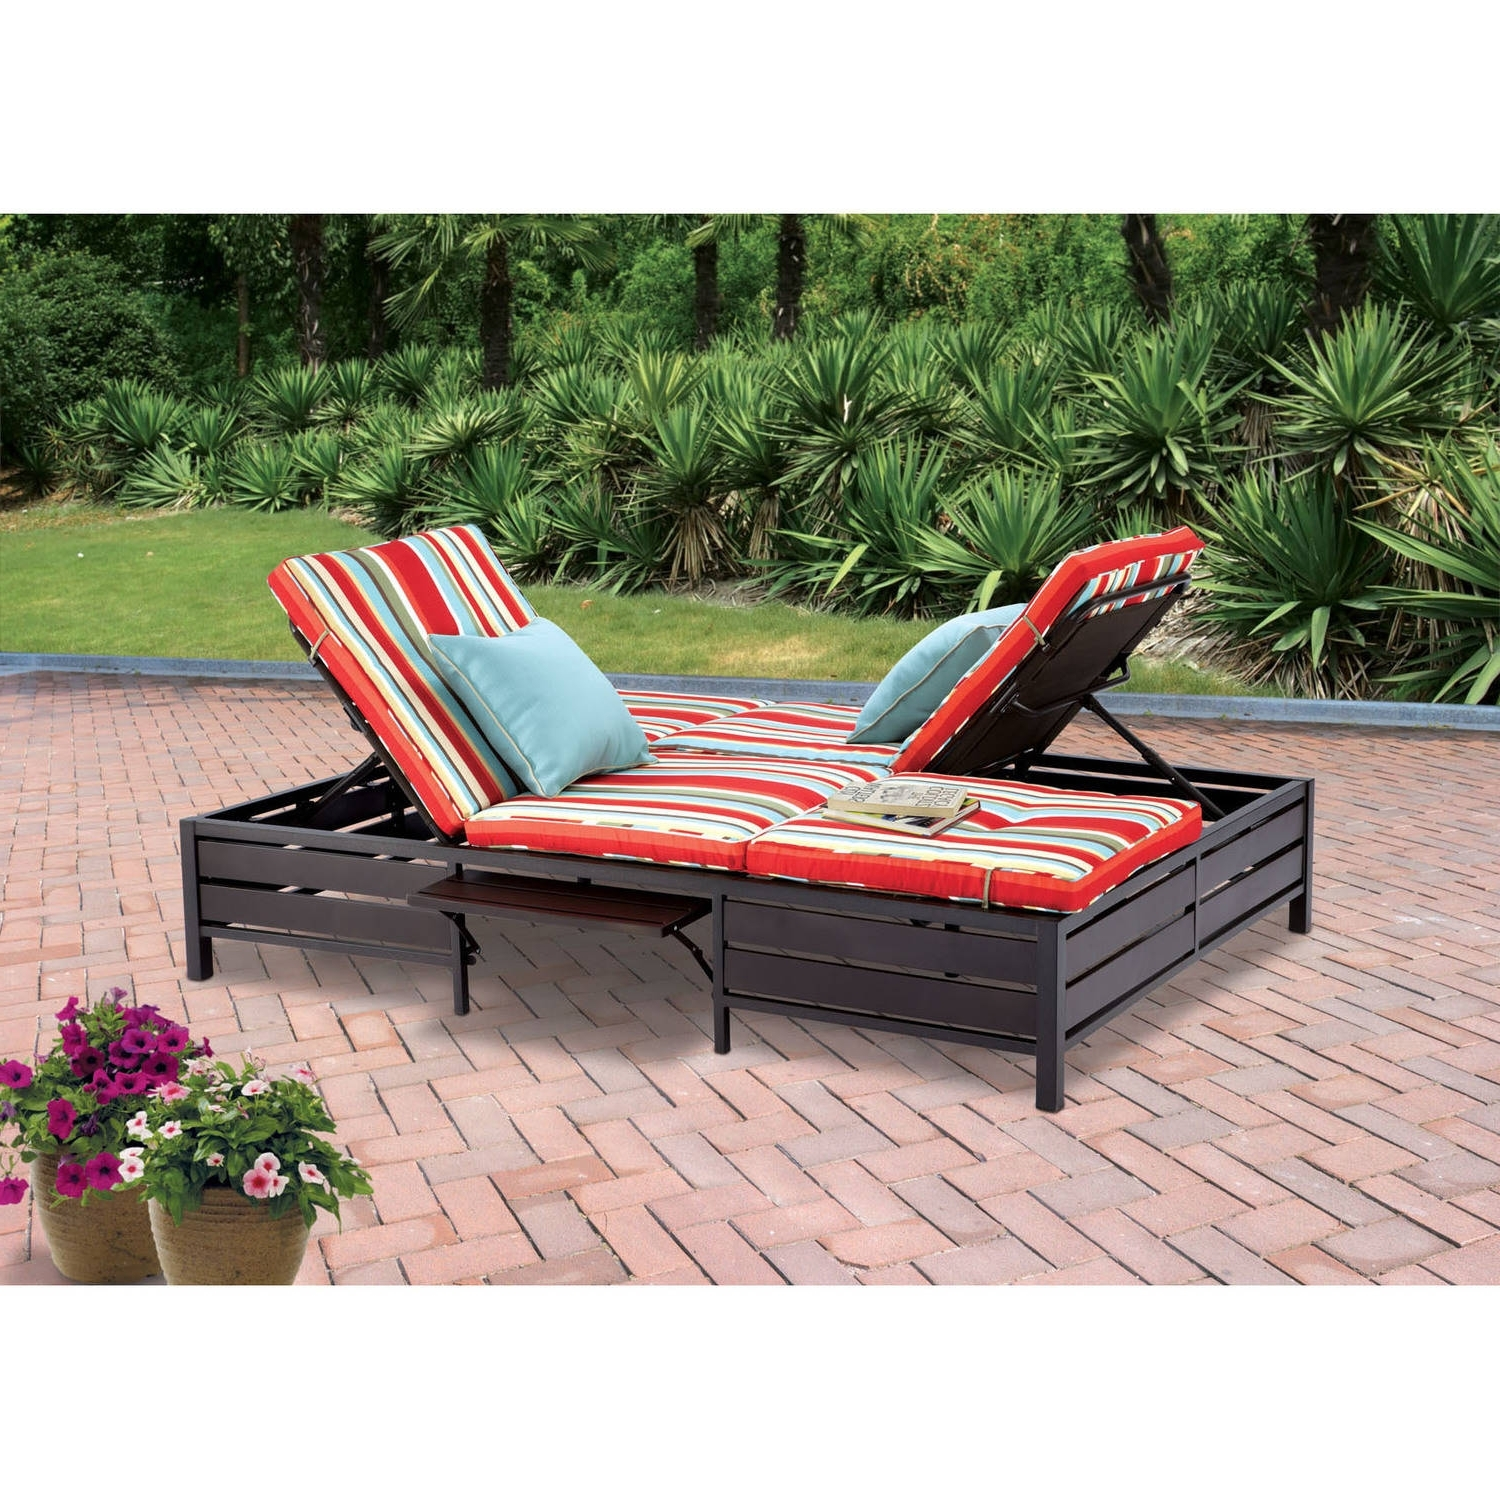 Walmart Chaise Lounge Chairs In Widely Used Mainstays Outdoor Double Chaise Lounger, Stripe, Seats 2 – Walmart (View 8 of 15)